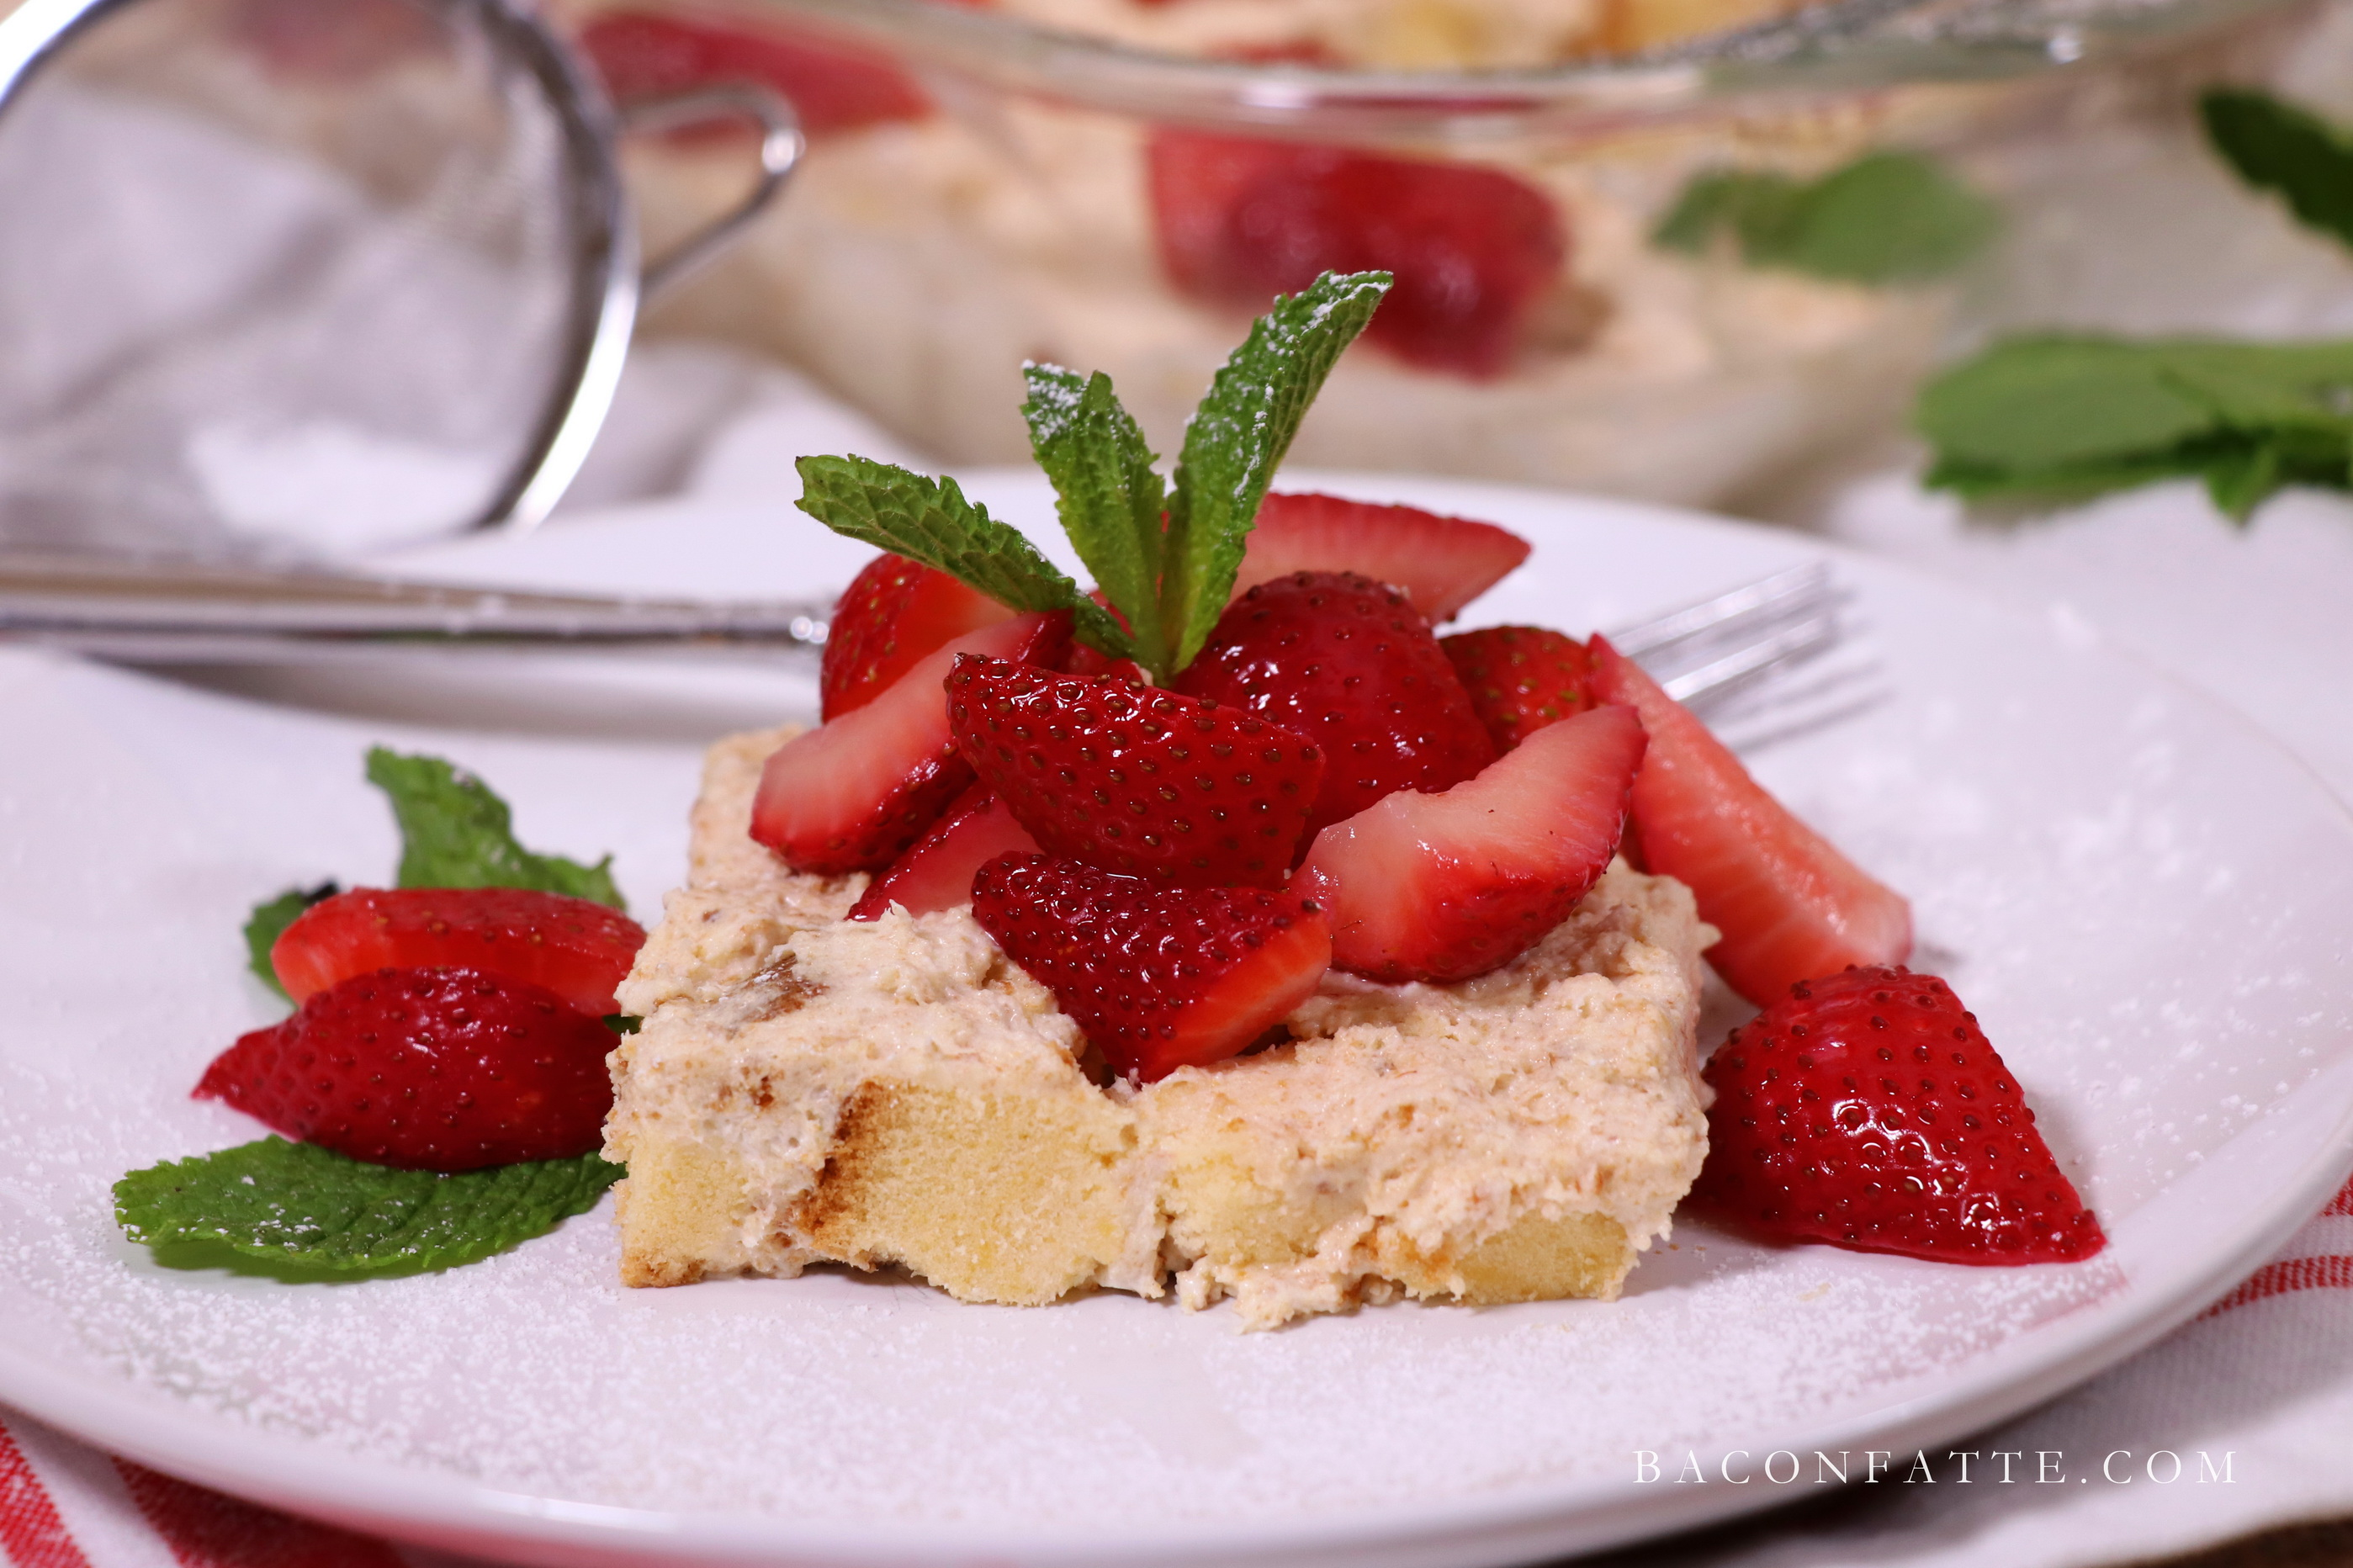 No Bake Strawberry Shortcake Dessert Baconfattecom